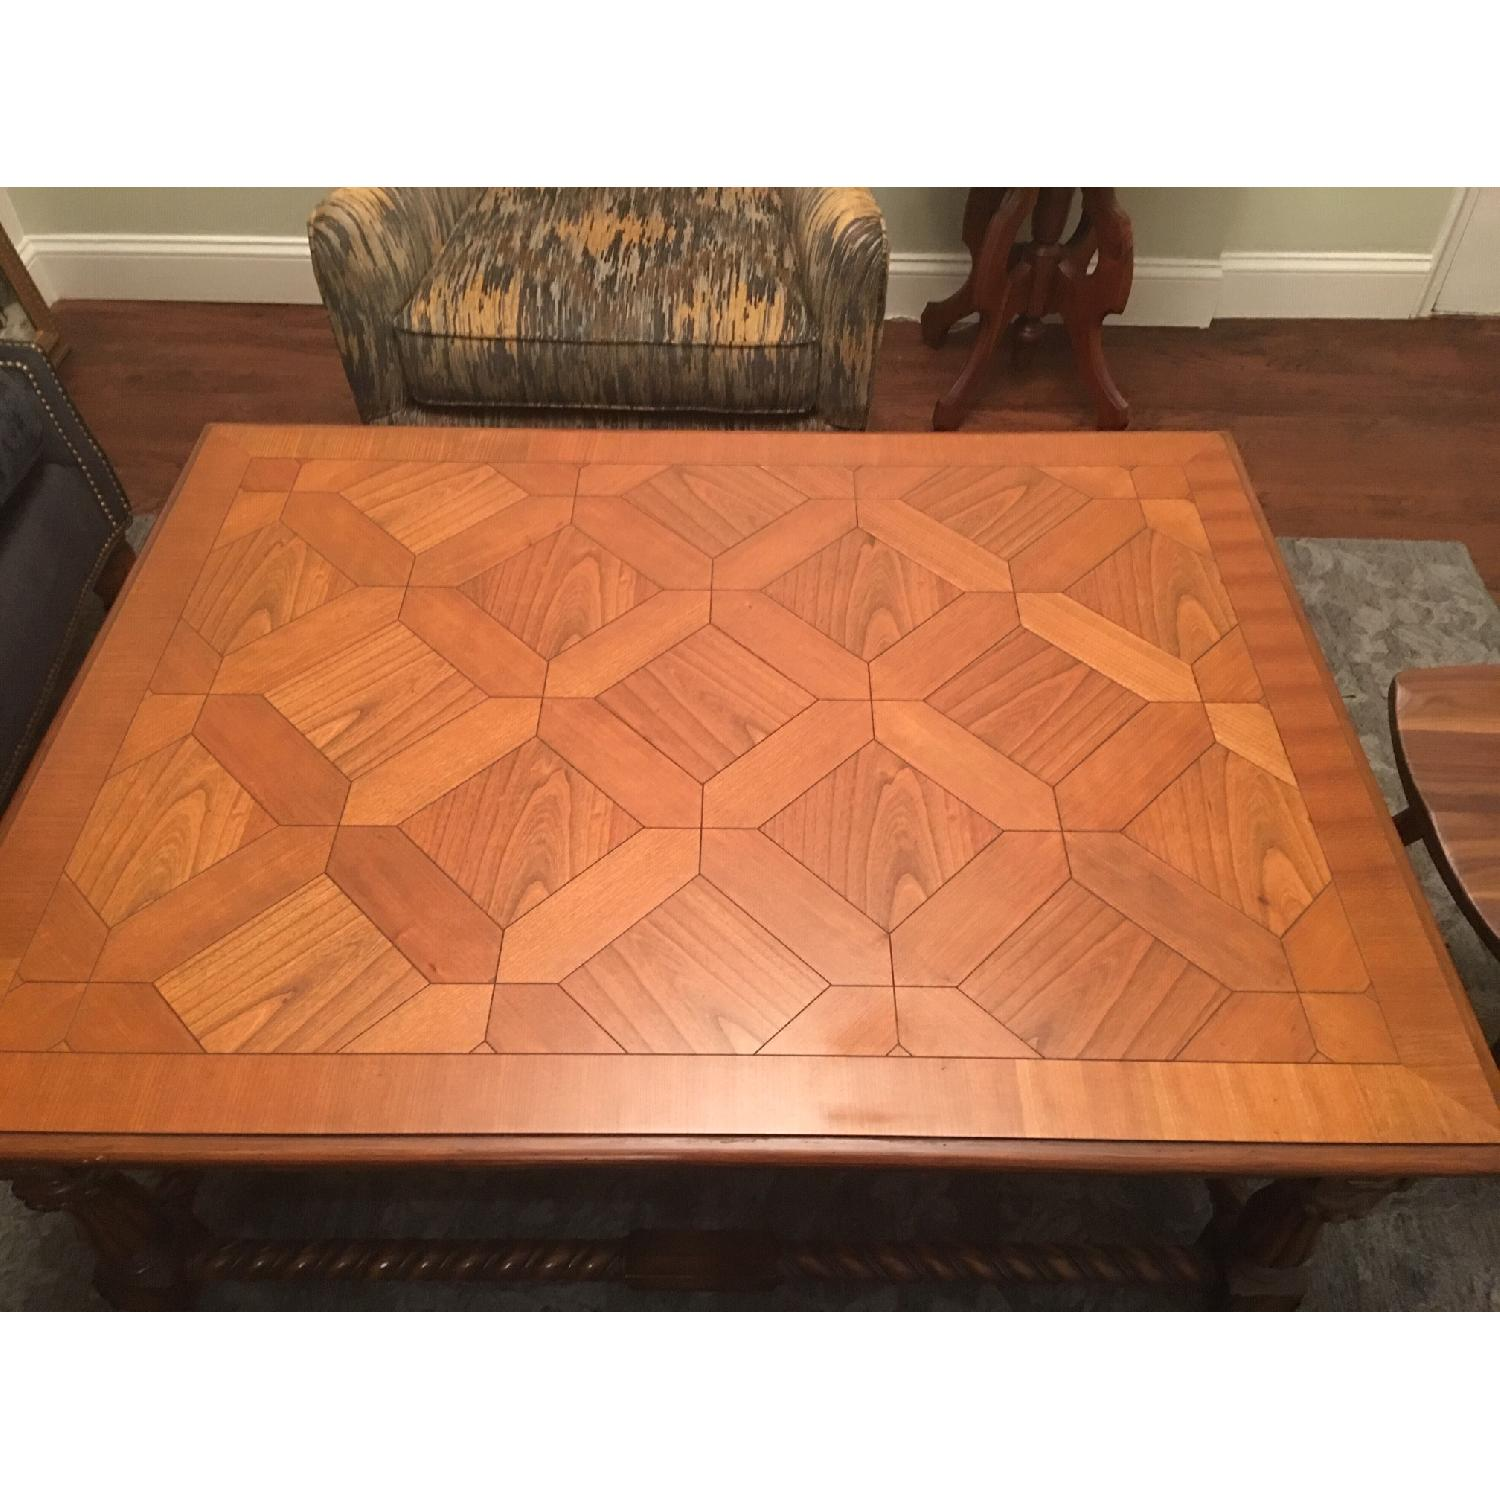 Large Coffee Table w/ Inlaid Wood - image-2